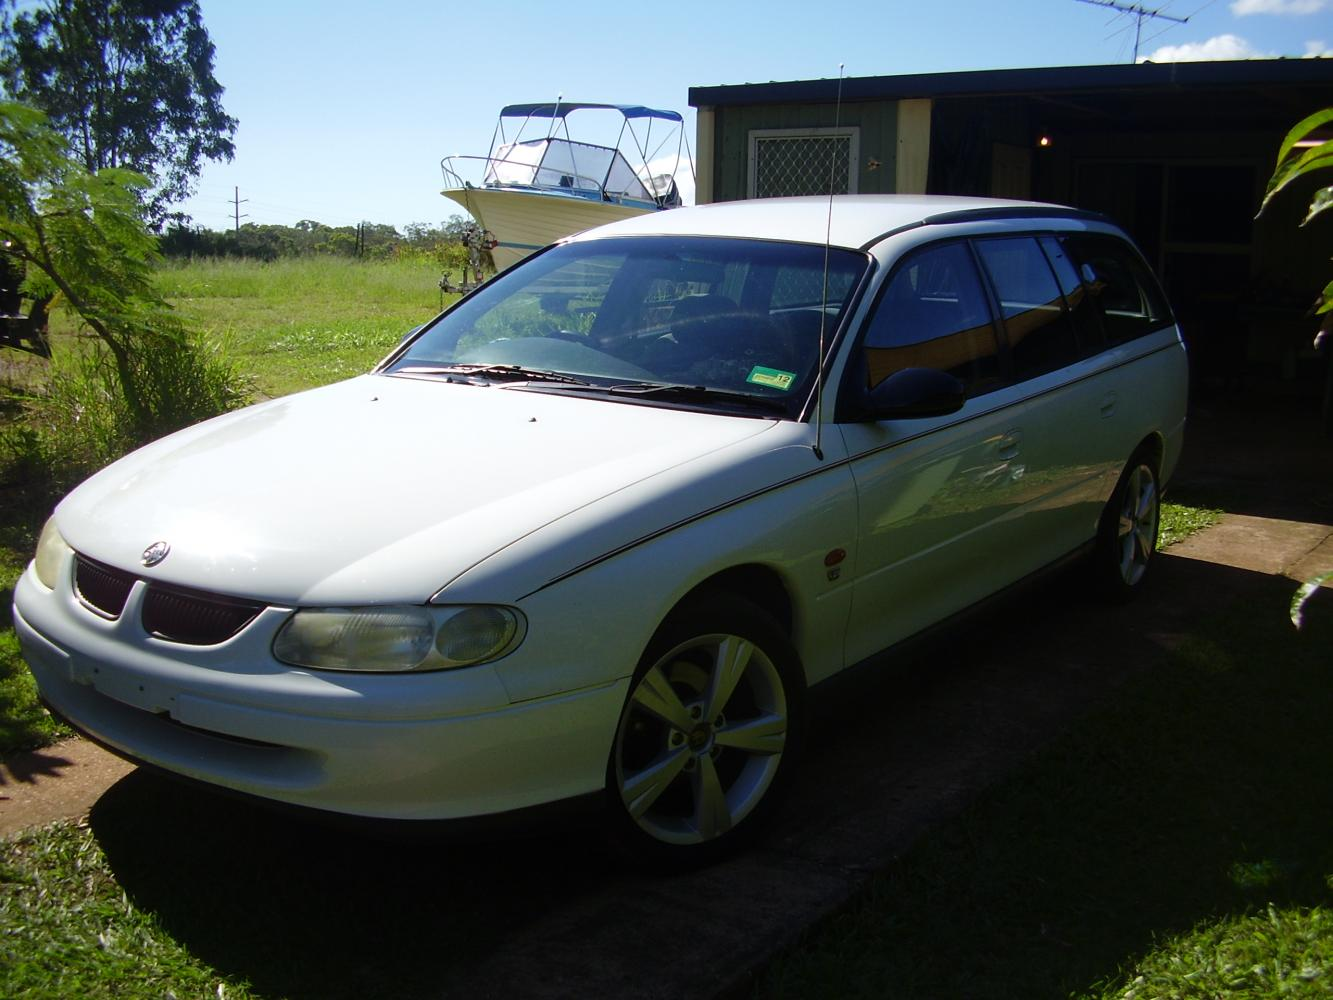 holden commodore wagon (vt) 1998 images